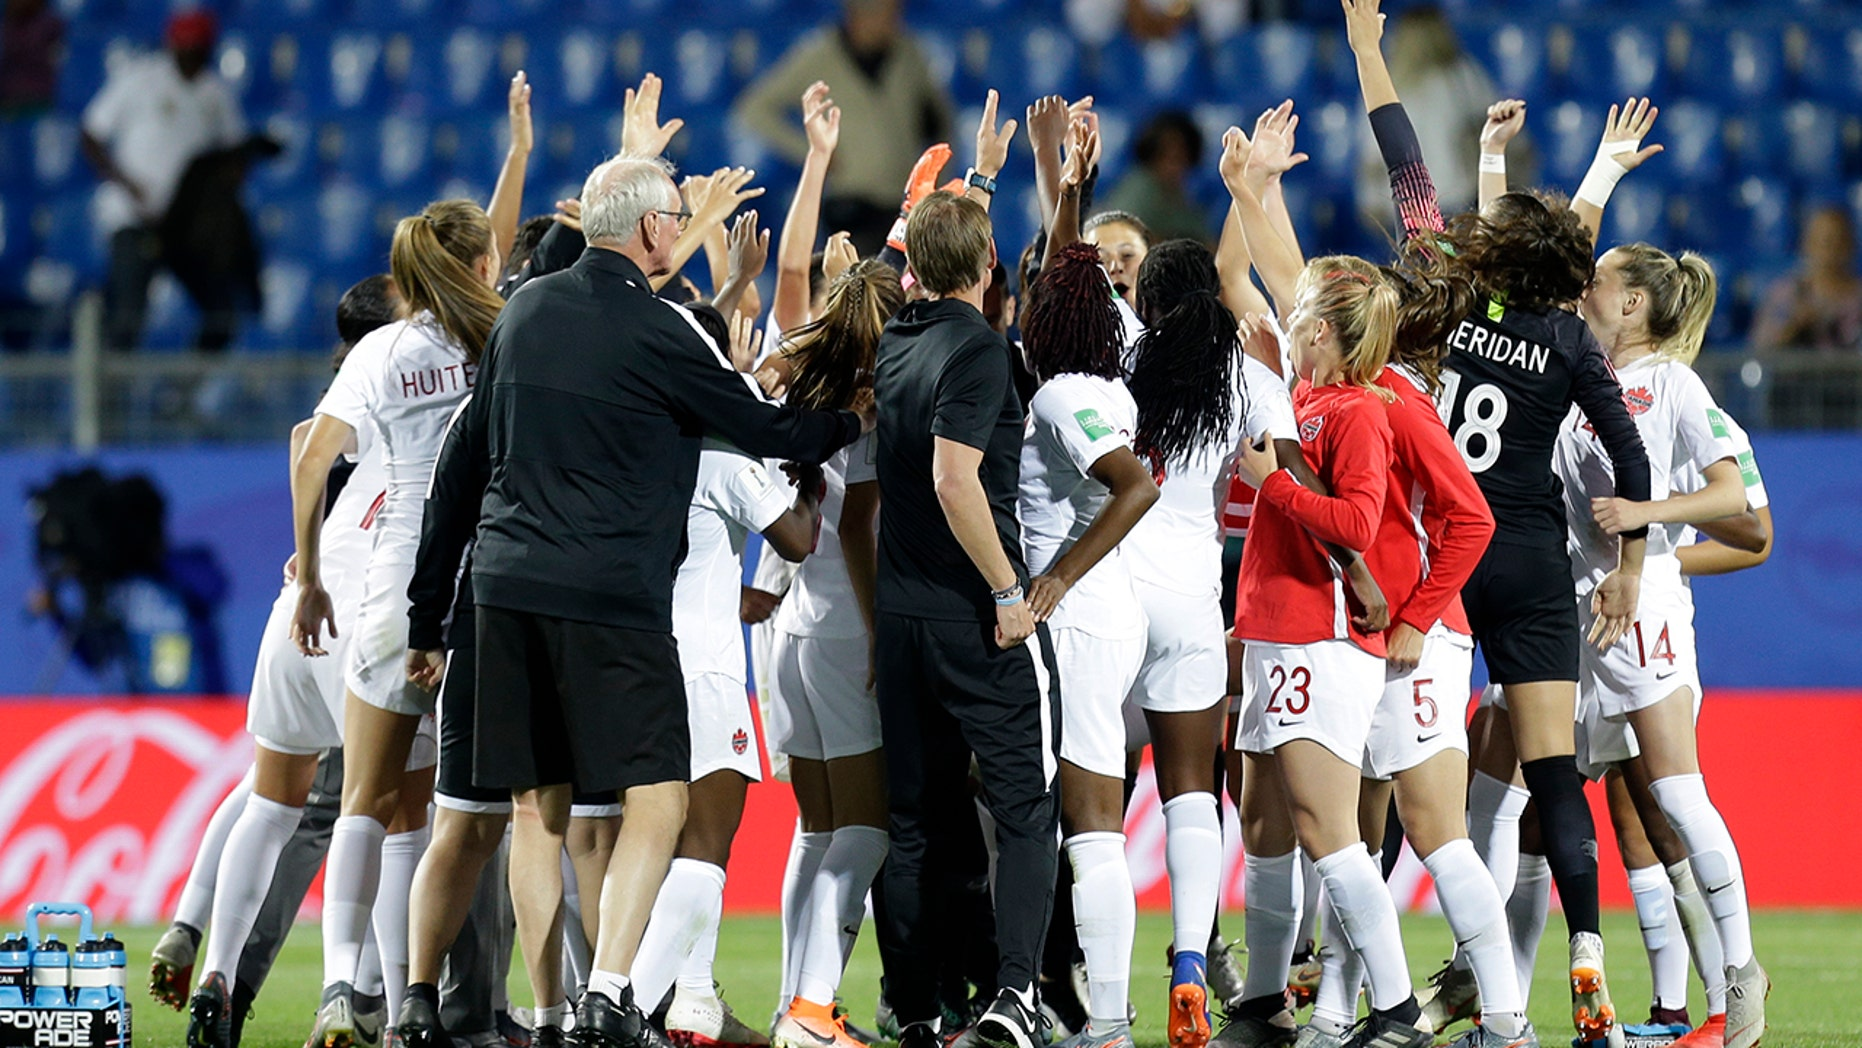 Canadian team celebrate after their 1-0 win in their Women's World Cup Group E soccer match between Canada and Cameroon in Montpellier, France, Monday, June 10, 2019. (AP Photo/Claude Paris)